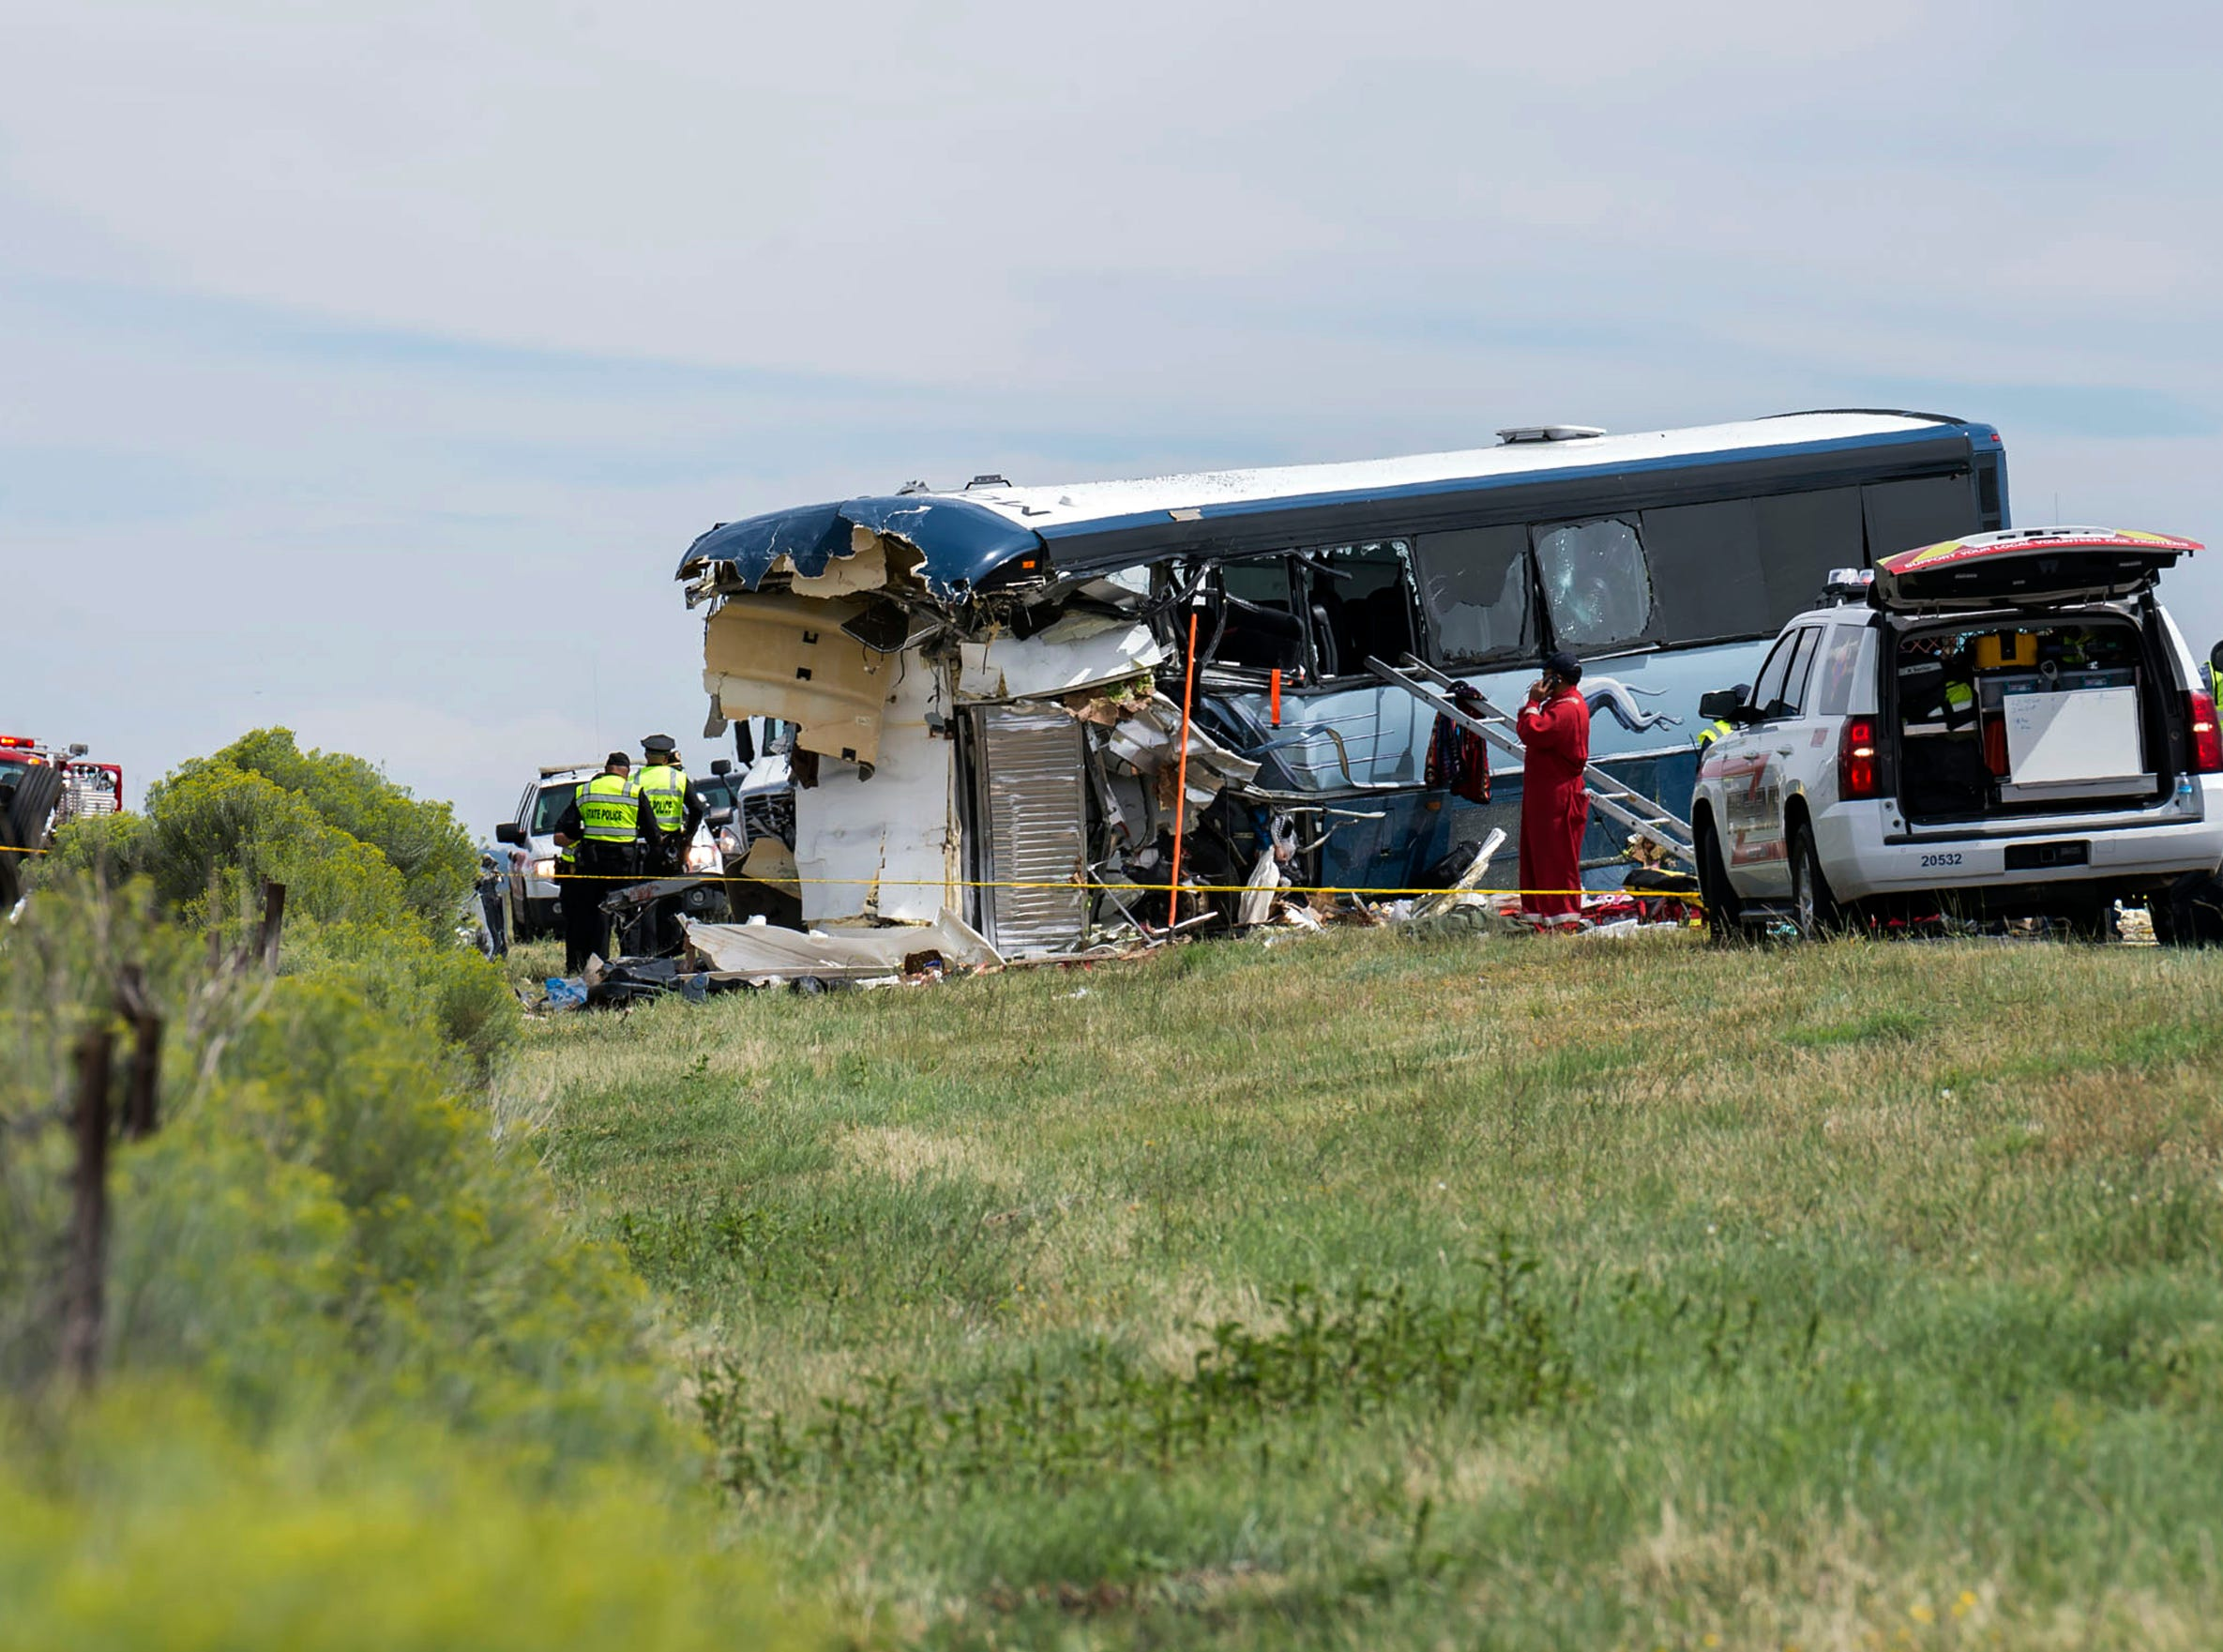 This Thursday, Aug. 30, 2018 photo shows a firefighter at the scene of the collision of a semitrailer that crossed the median of Interstate 40 and crashed head-on into a Greyhound bus near Thoreau, N.M. A California-based trucking company and one of its drivers were accused of negligence Friday in a pair of lawsuits as investigators sorted through the wreckage from a deadly bus crash on a New Mexico highway.